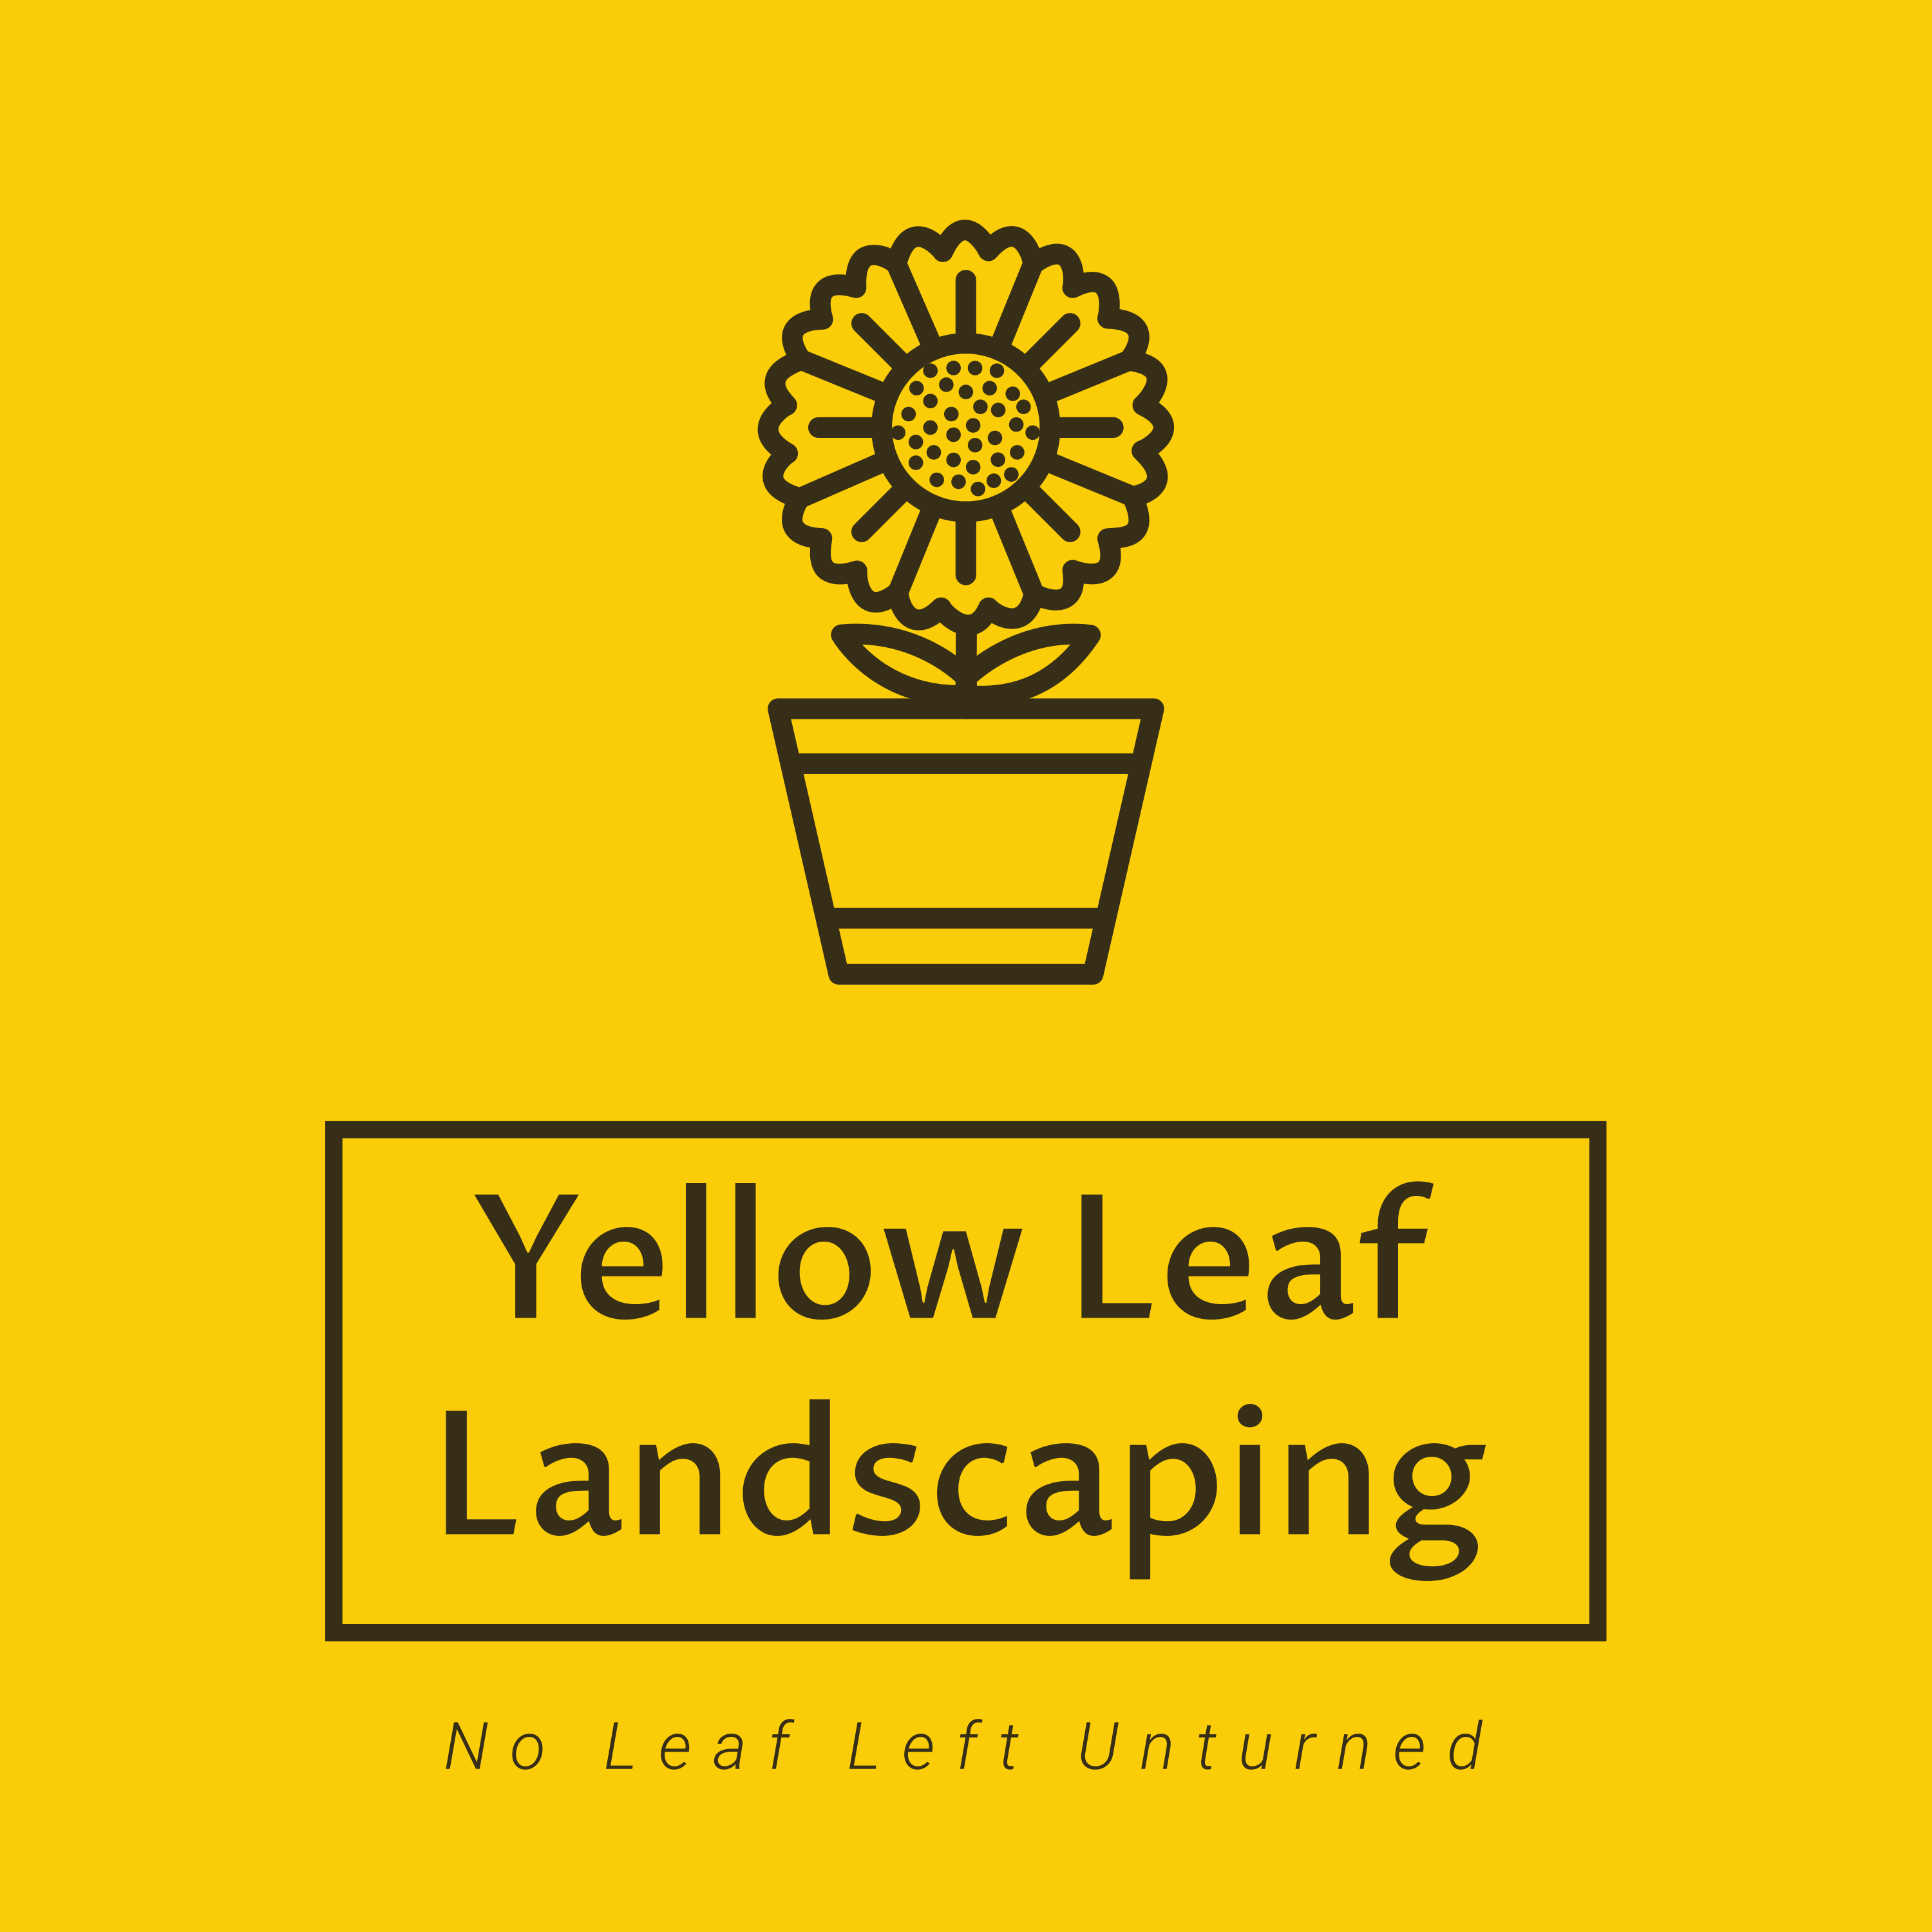 Yellow Leaf Landscaping